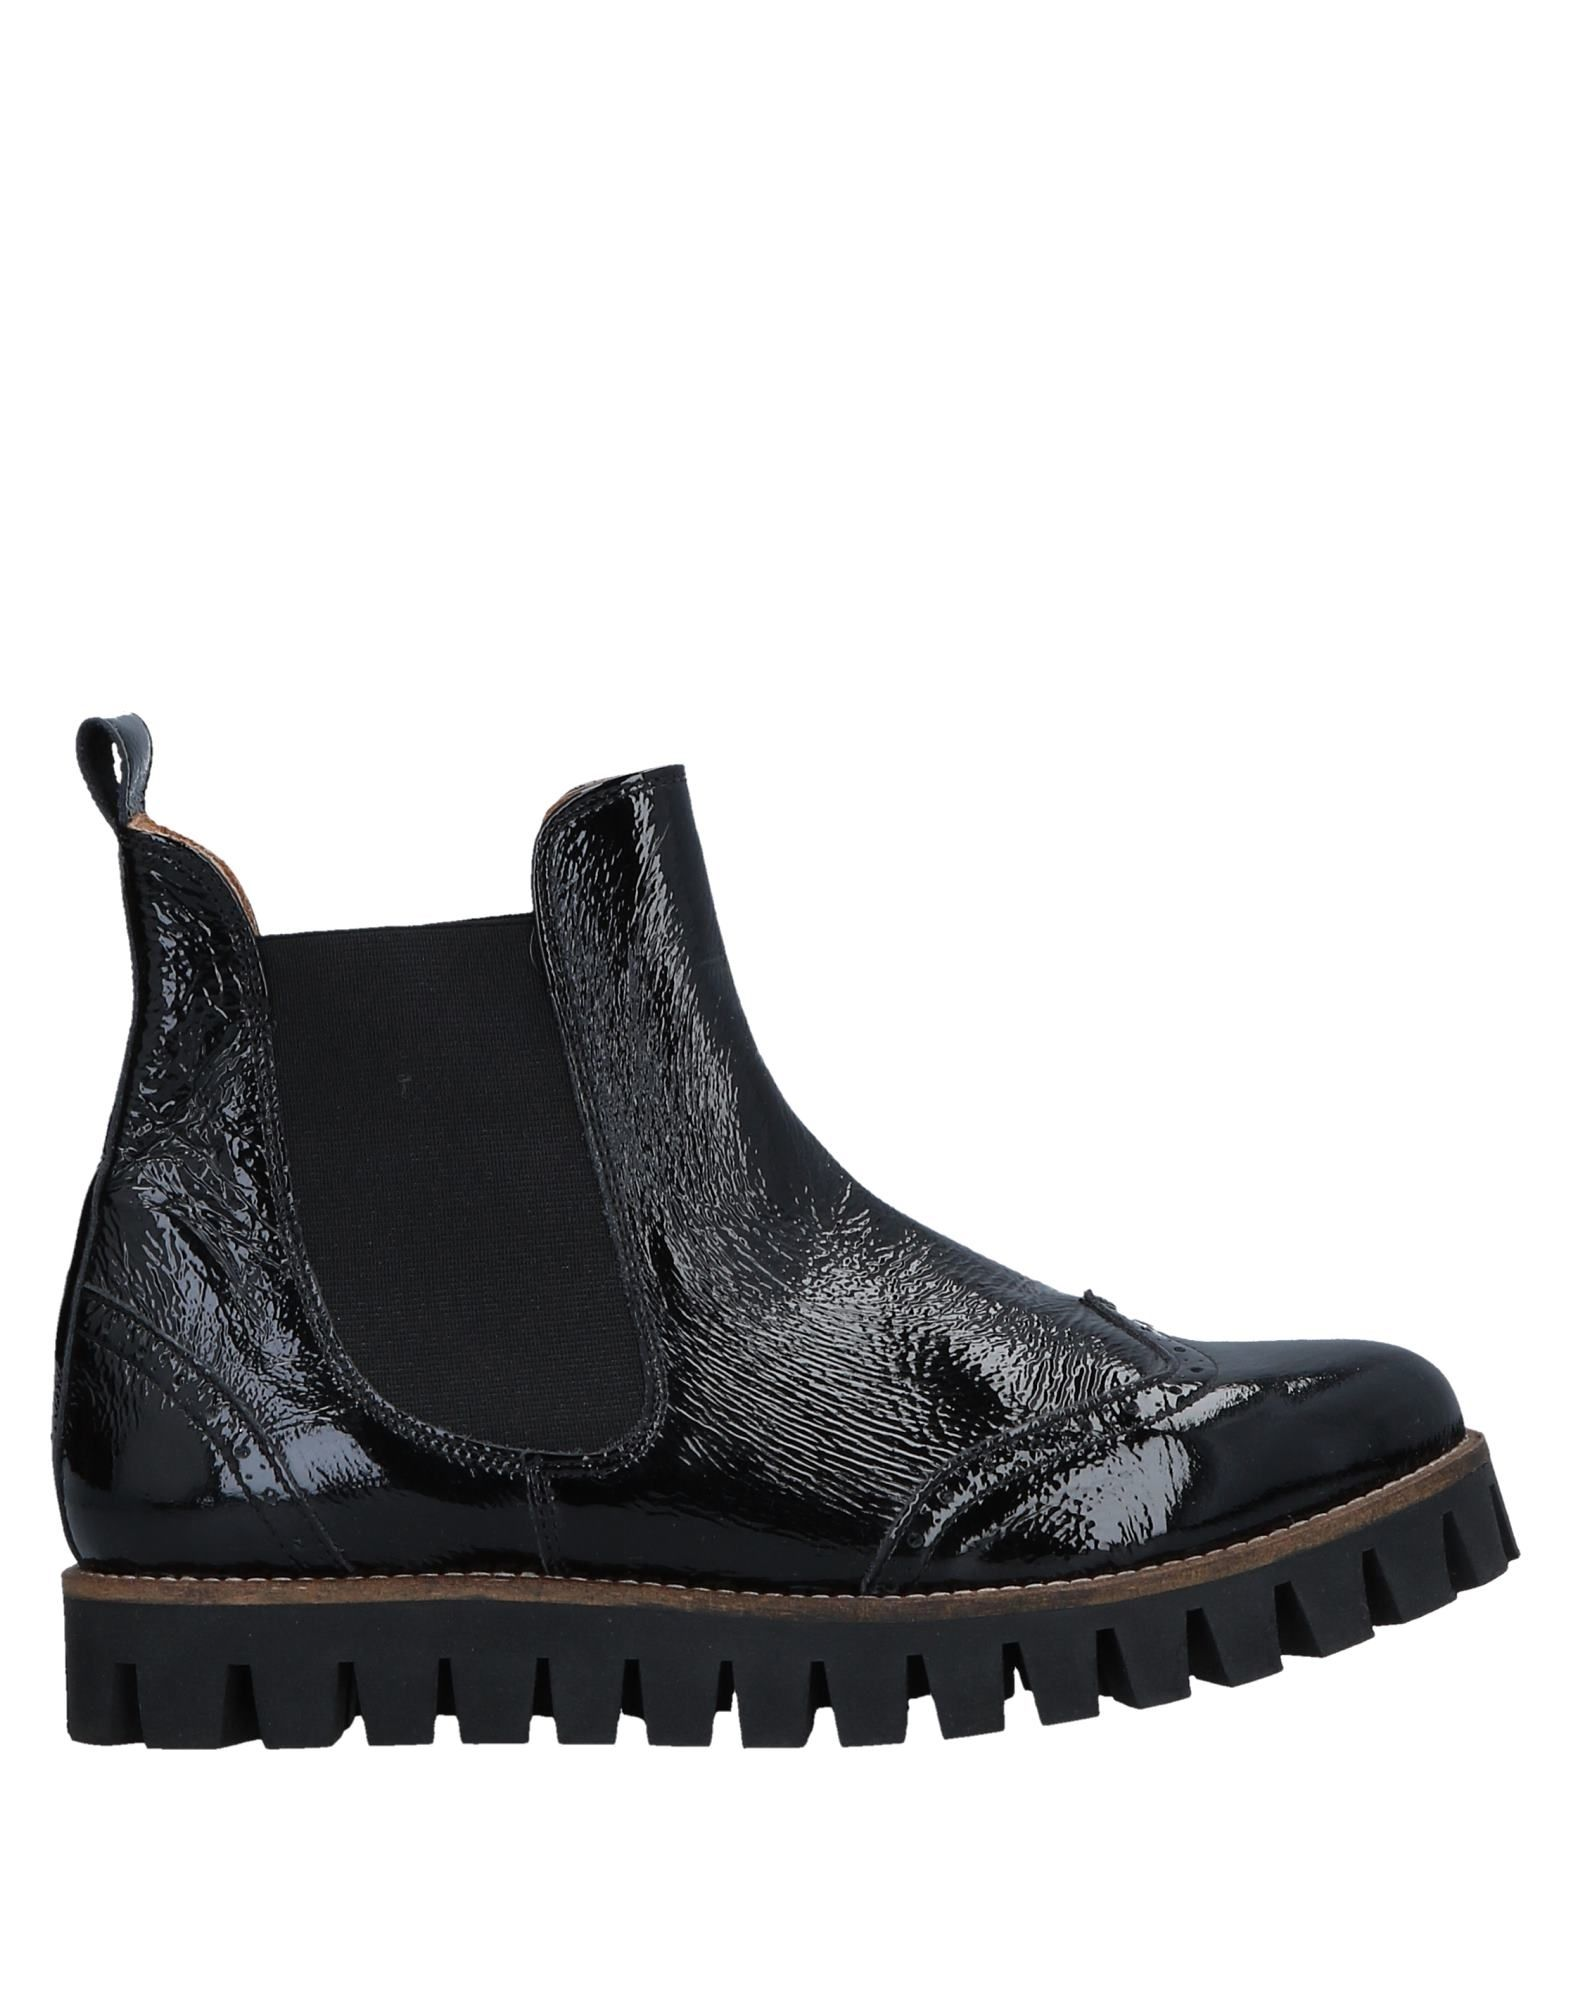 Ganni Ankle Boot Boots - Women Ganni Ankle Boots Boot online on  Australia - 11532277JK 9aa1d7